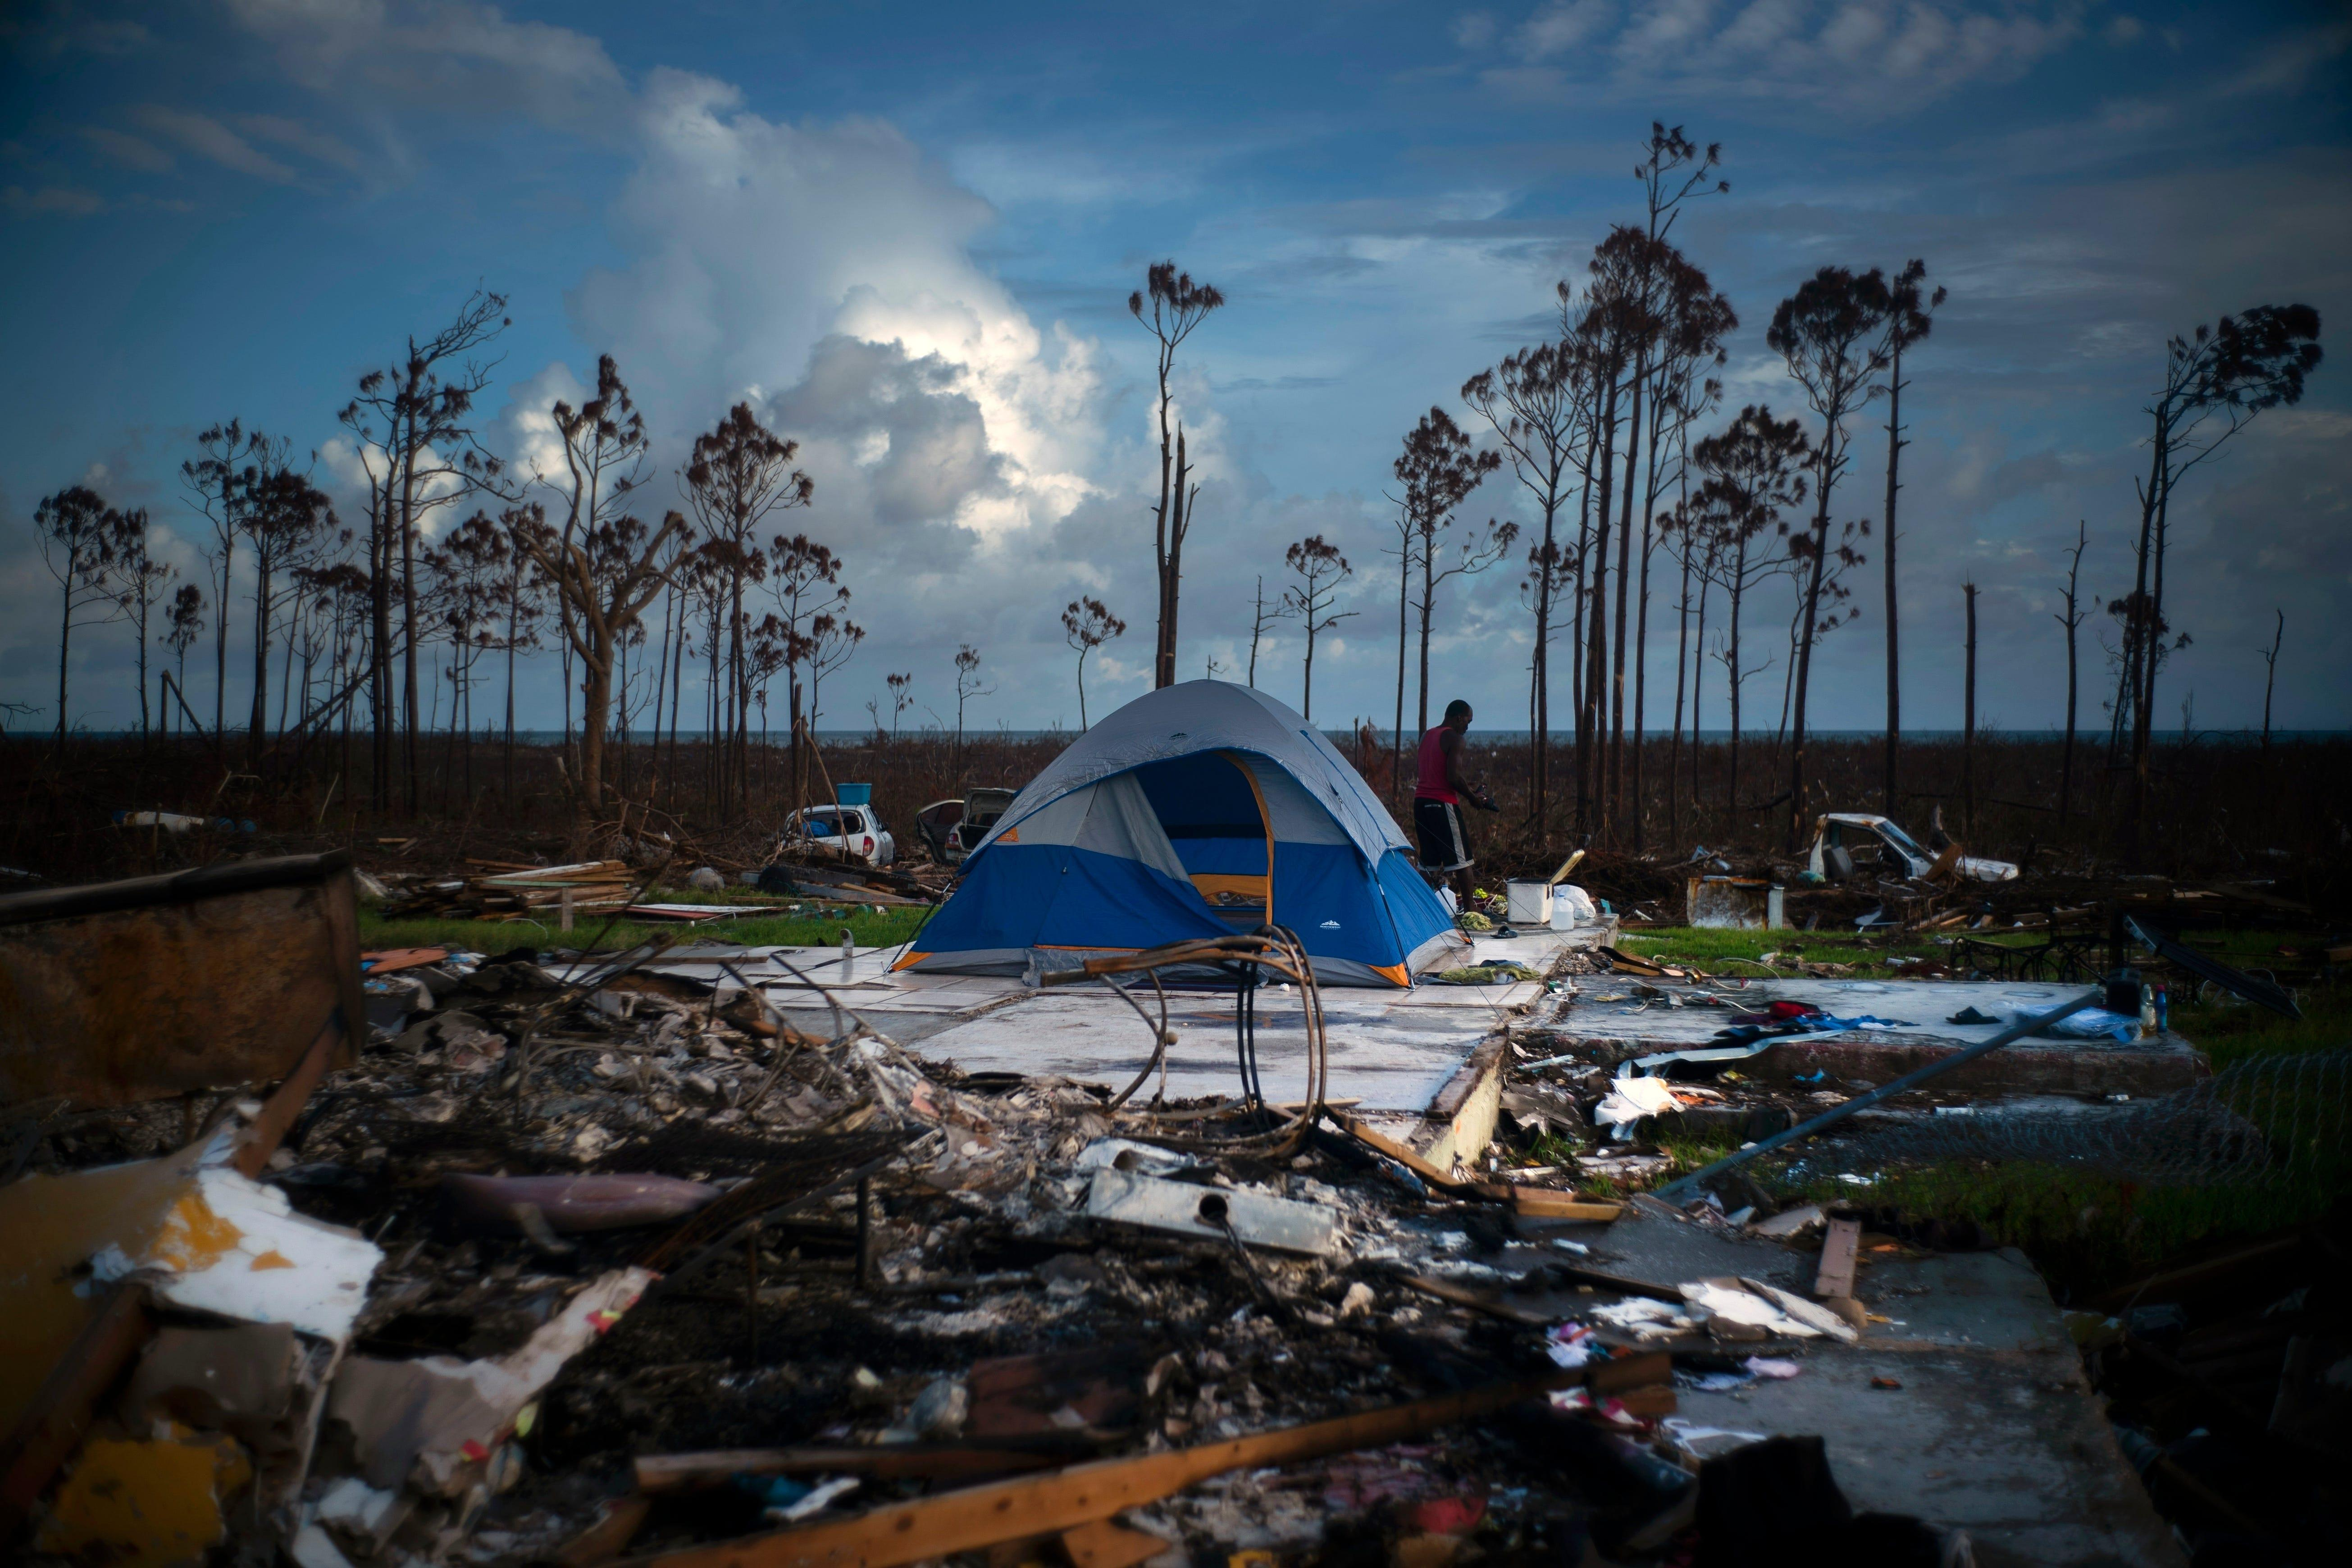 Don't let your guard down: Hurricane season 2019 has hit some records. And it's not over yet